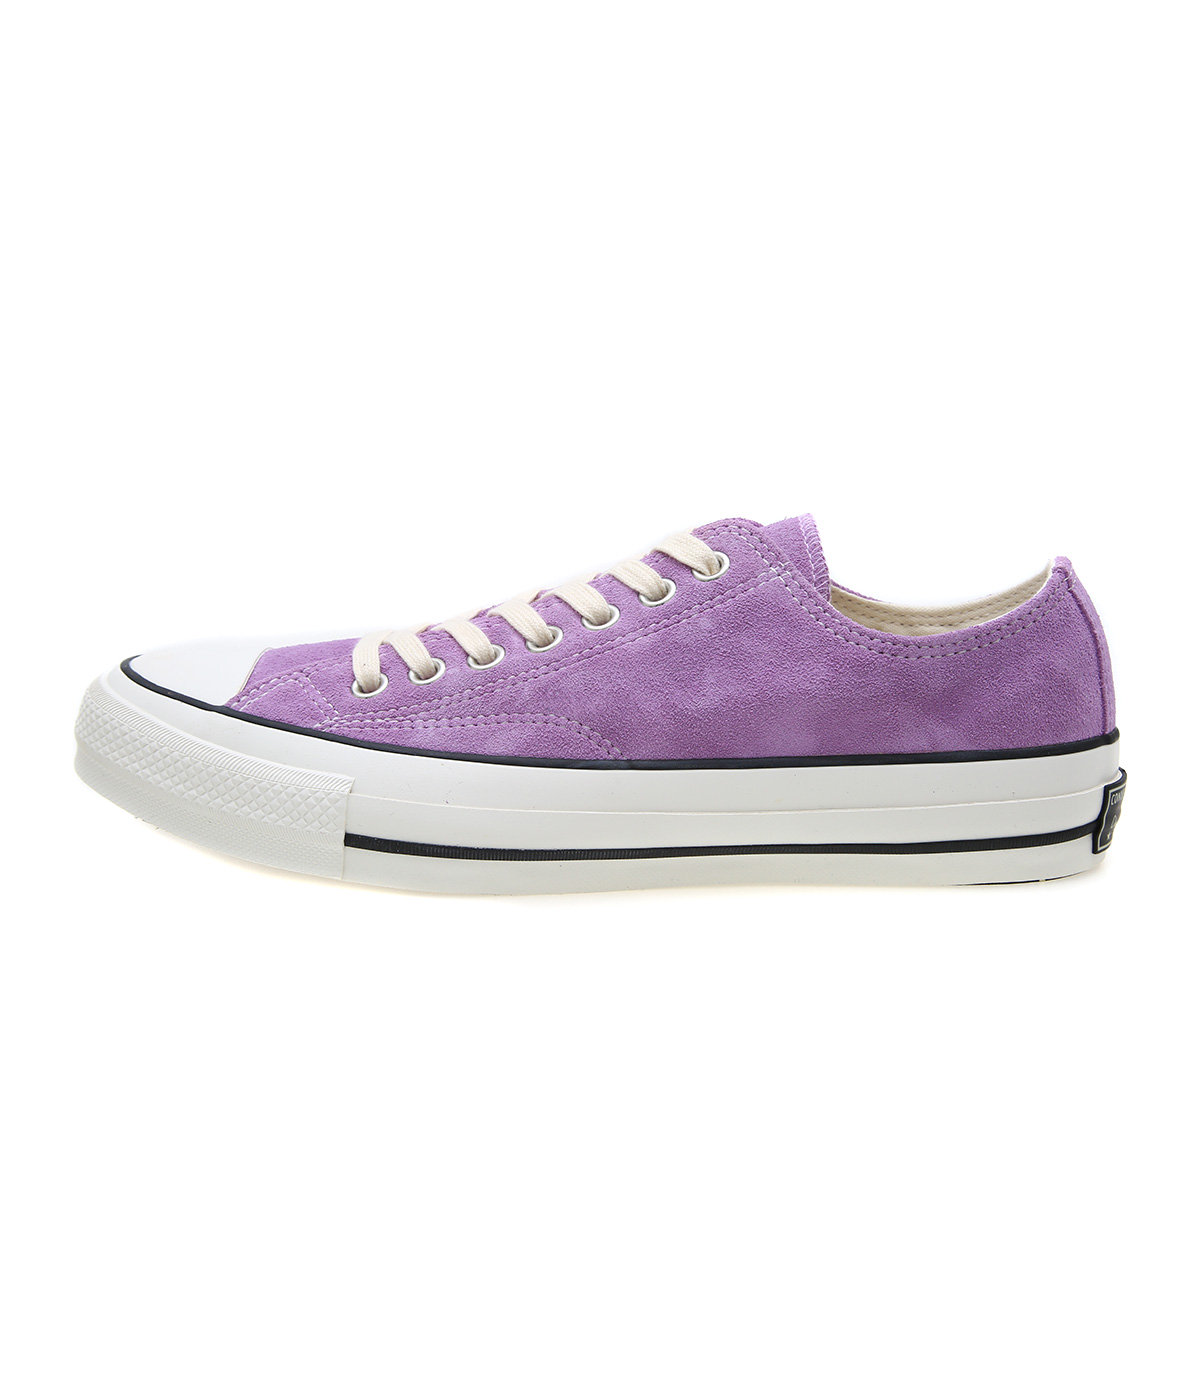 CHUCK TAYLOR SUEDE OX -LILAC-